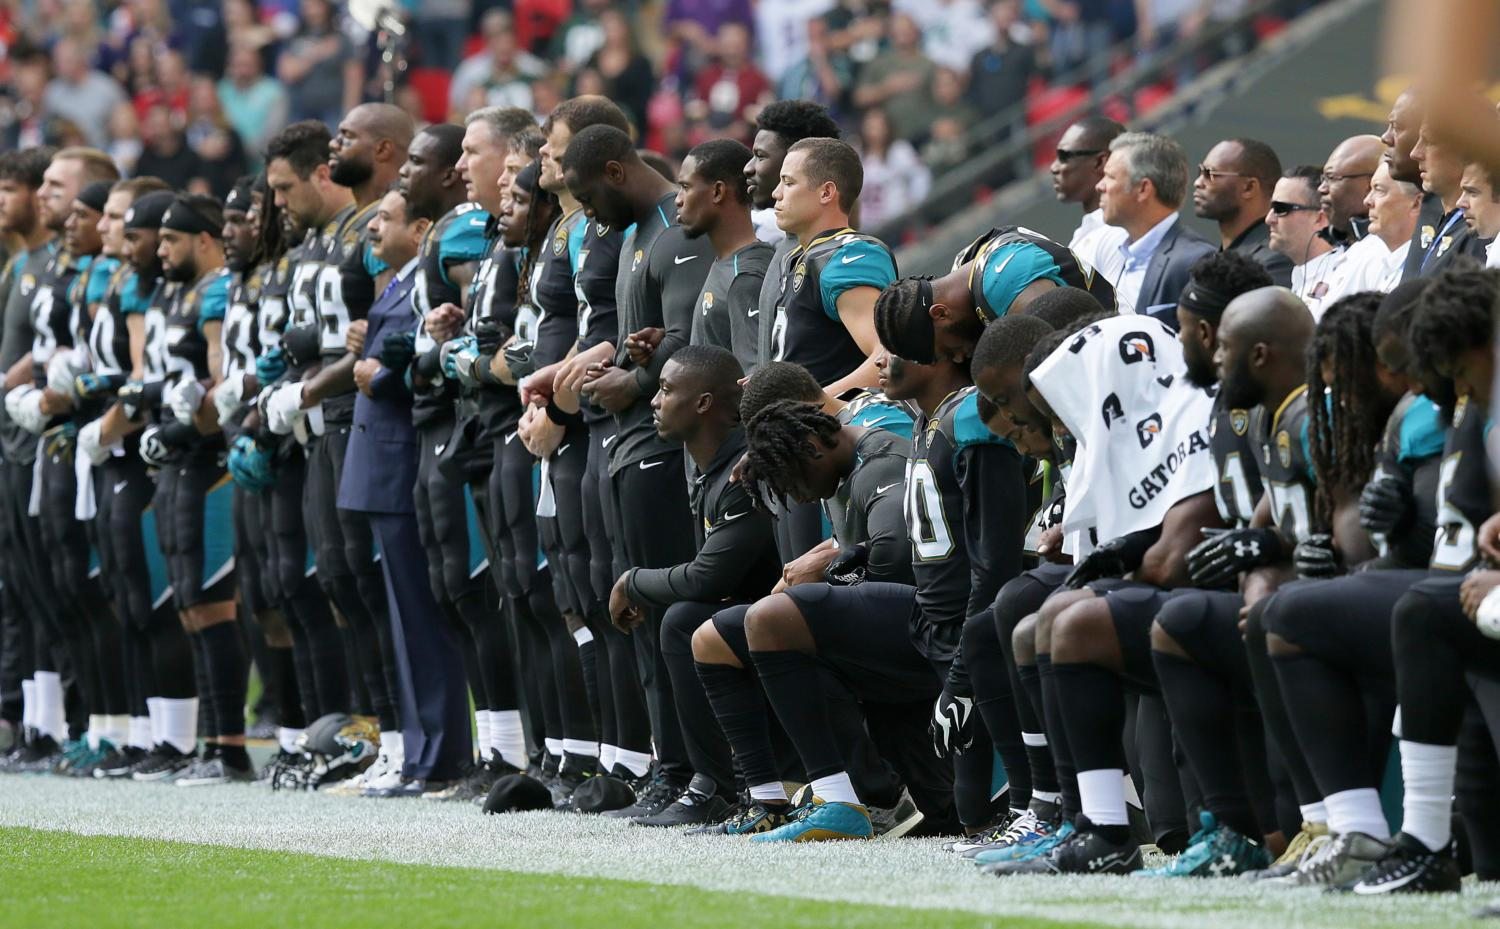 At a game versus the Ravens on September 24, Jaguars players choose during the National Anthem to either kneel, representing a peaceful protest, or stand with their arms linked, representing unity.